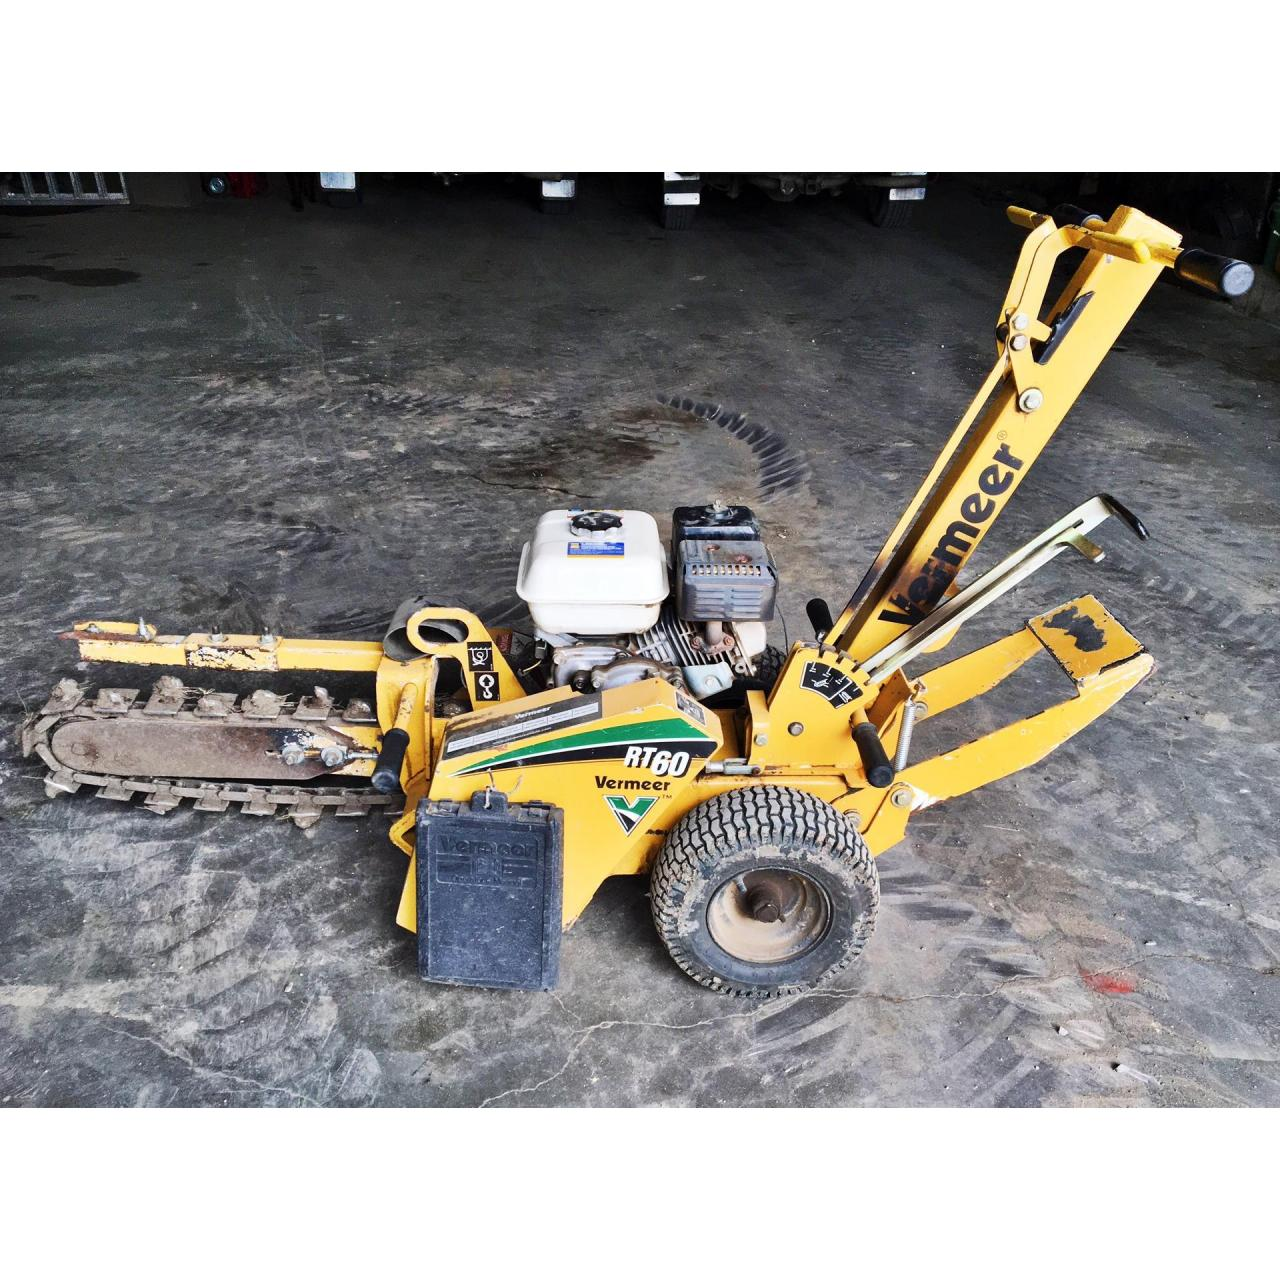 Chain Trencher Rental- $100/day